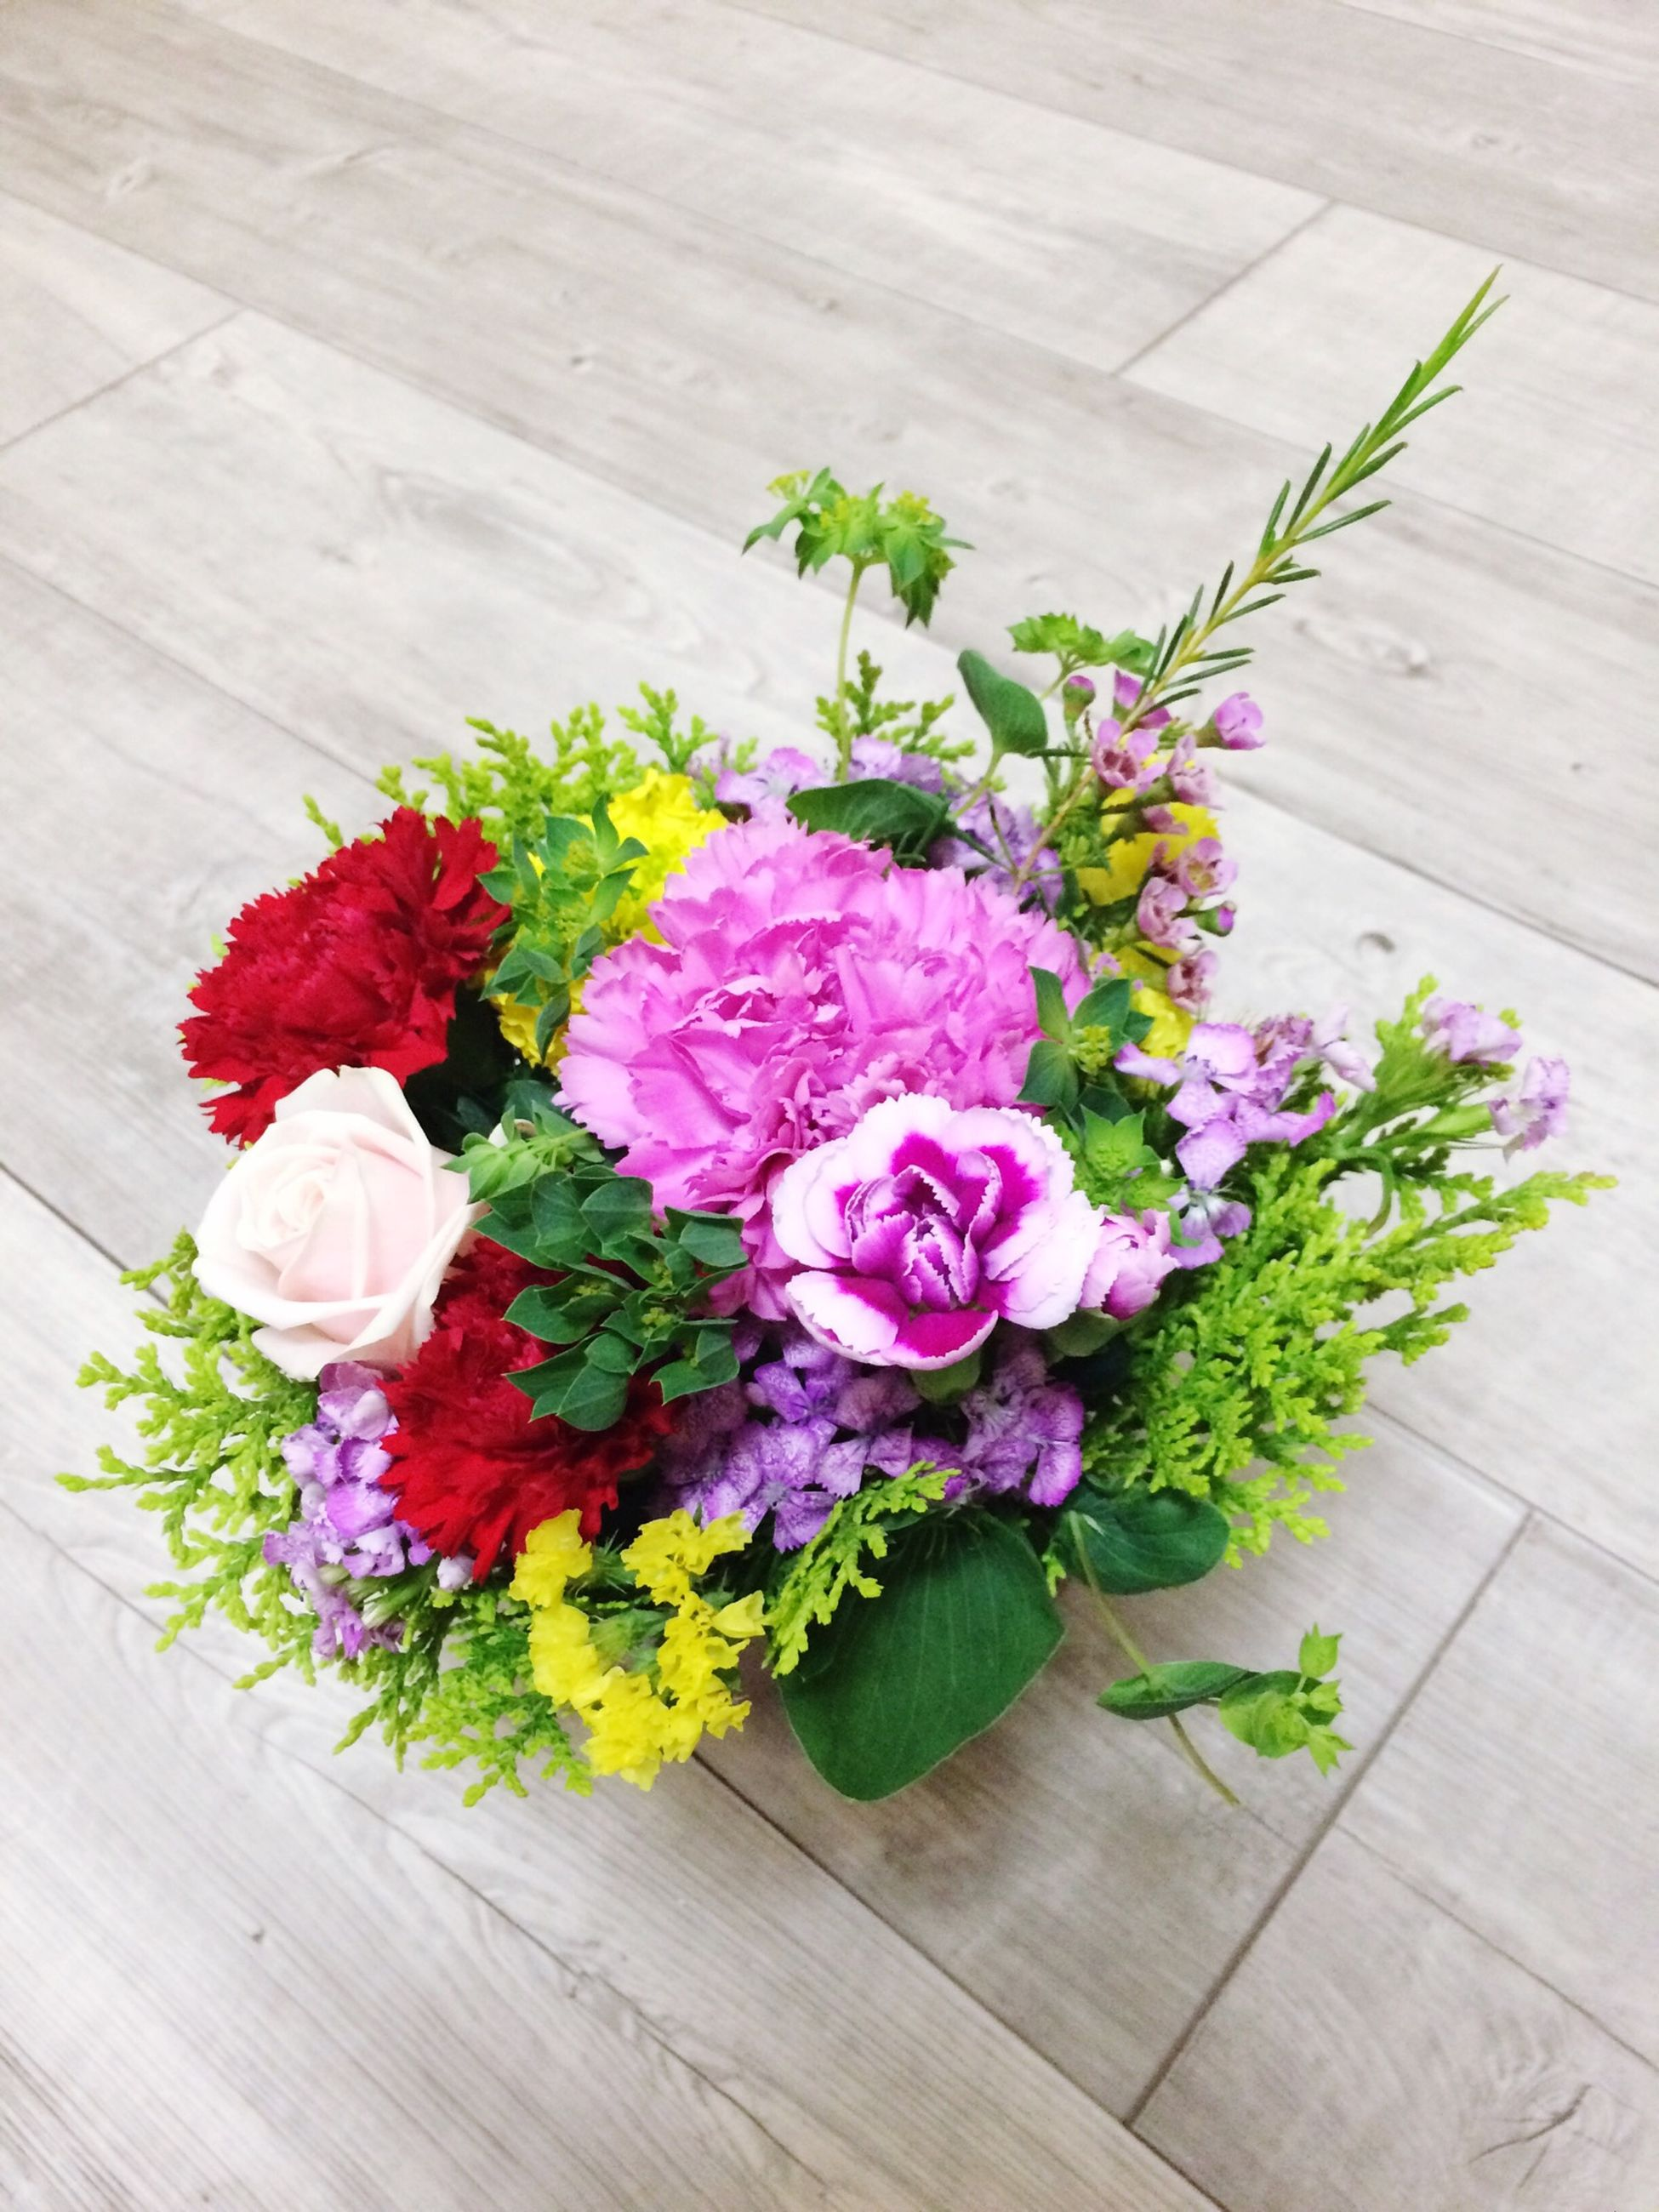 flower, freshness, petal, fragility, high angle view, flower head, indoors, table, wood - material, beauty in nature, plant, growth, bouquet, leaf, nature, vase, bunch of flowers, potted plant, wooden, flower arrangement